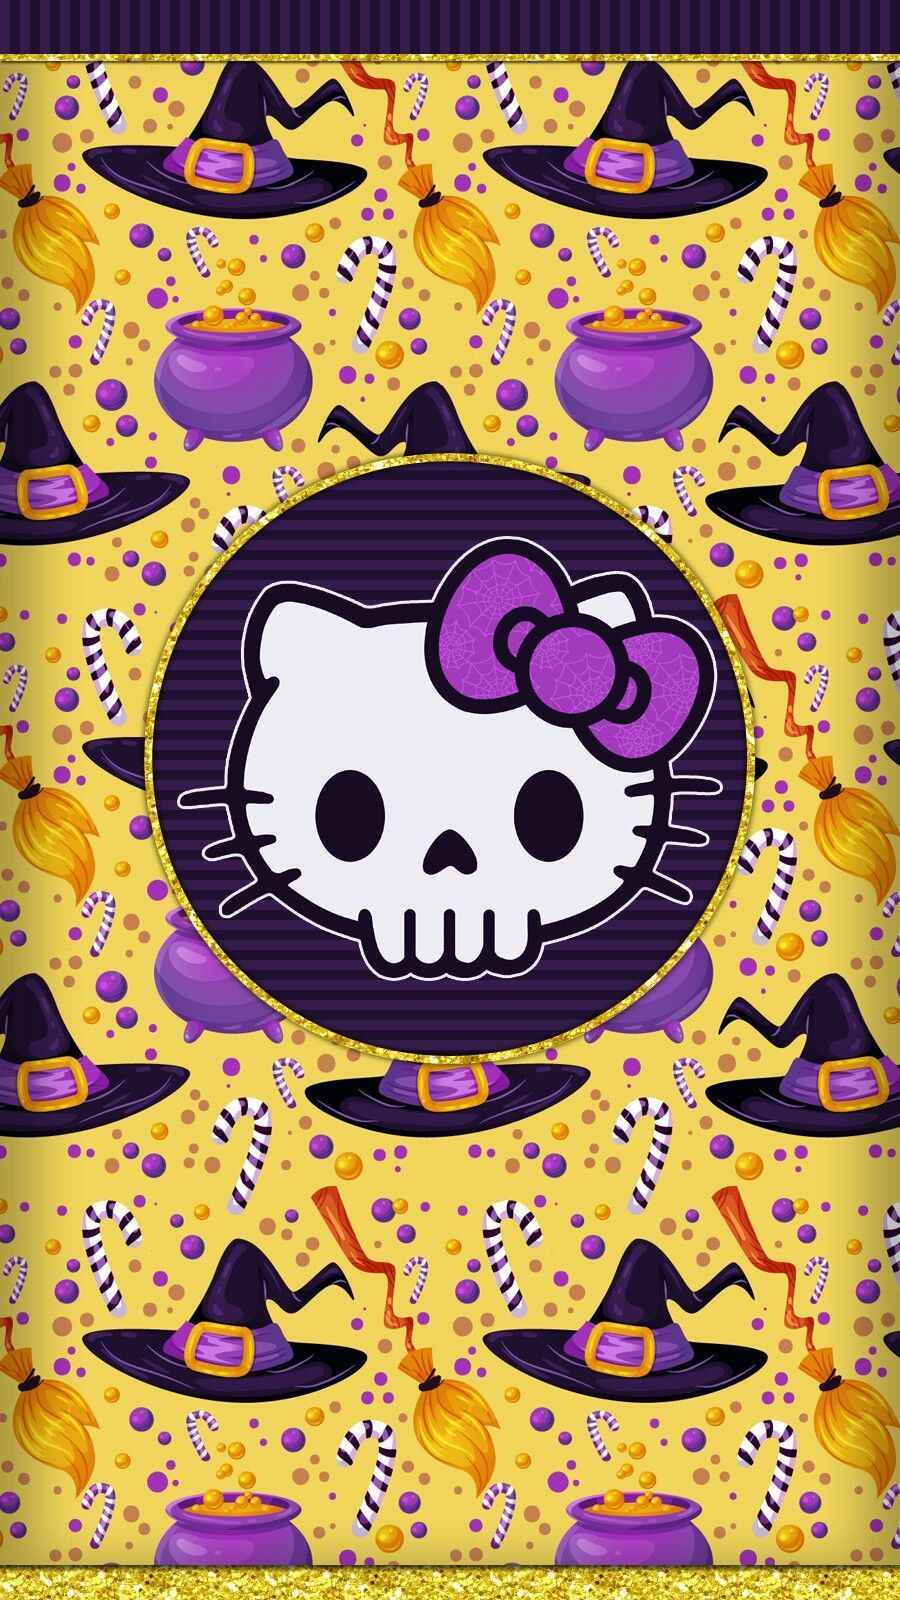 Girly Cute Halloween Wallpaper.Girly Halloween Wallpapers Top Free Girly Halloween Backgrounds